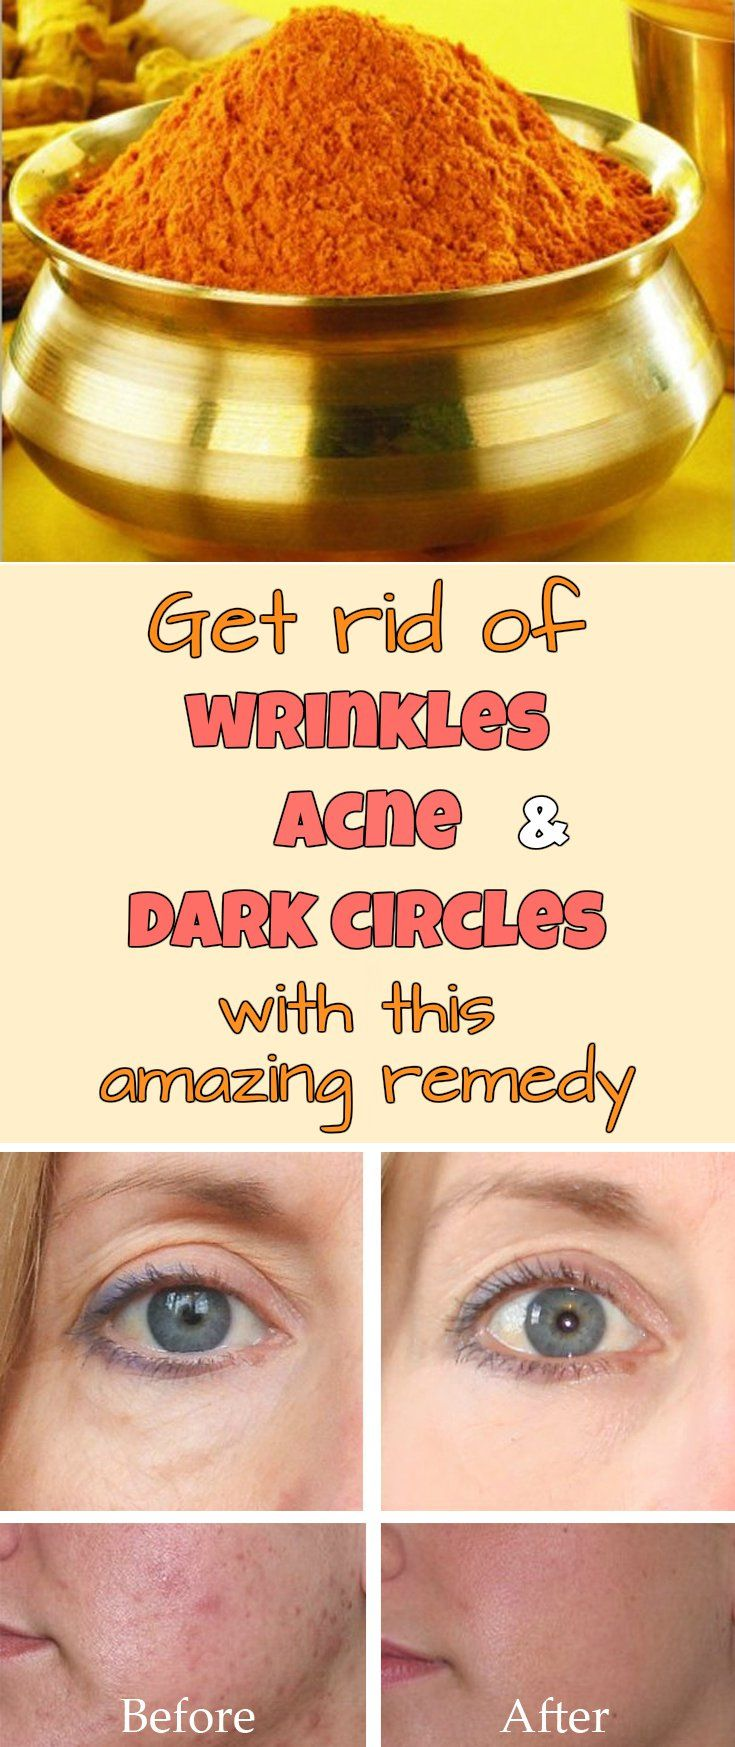 Get rid of wrinkles, acne and dark circles with this amazing remedy - Beauty-Total.com